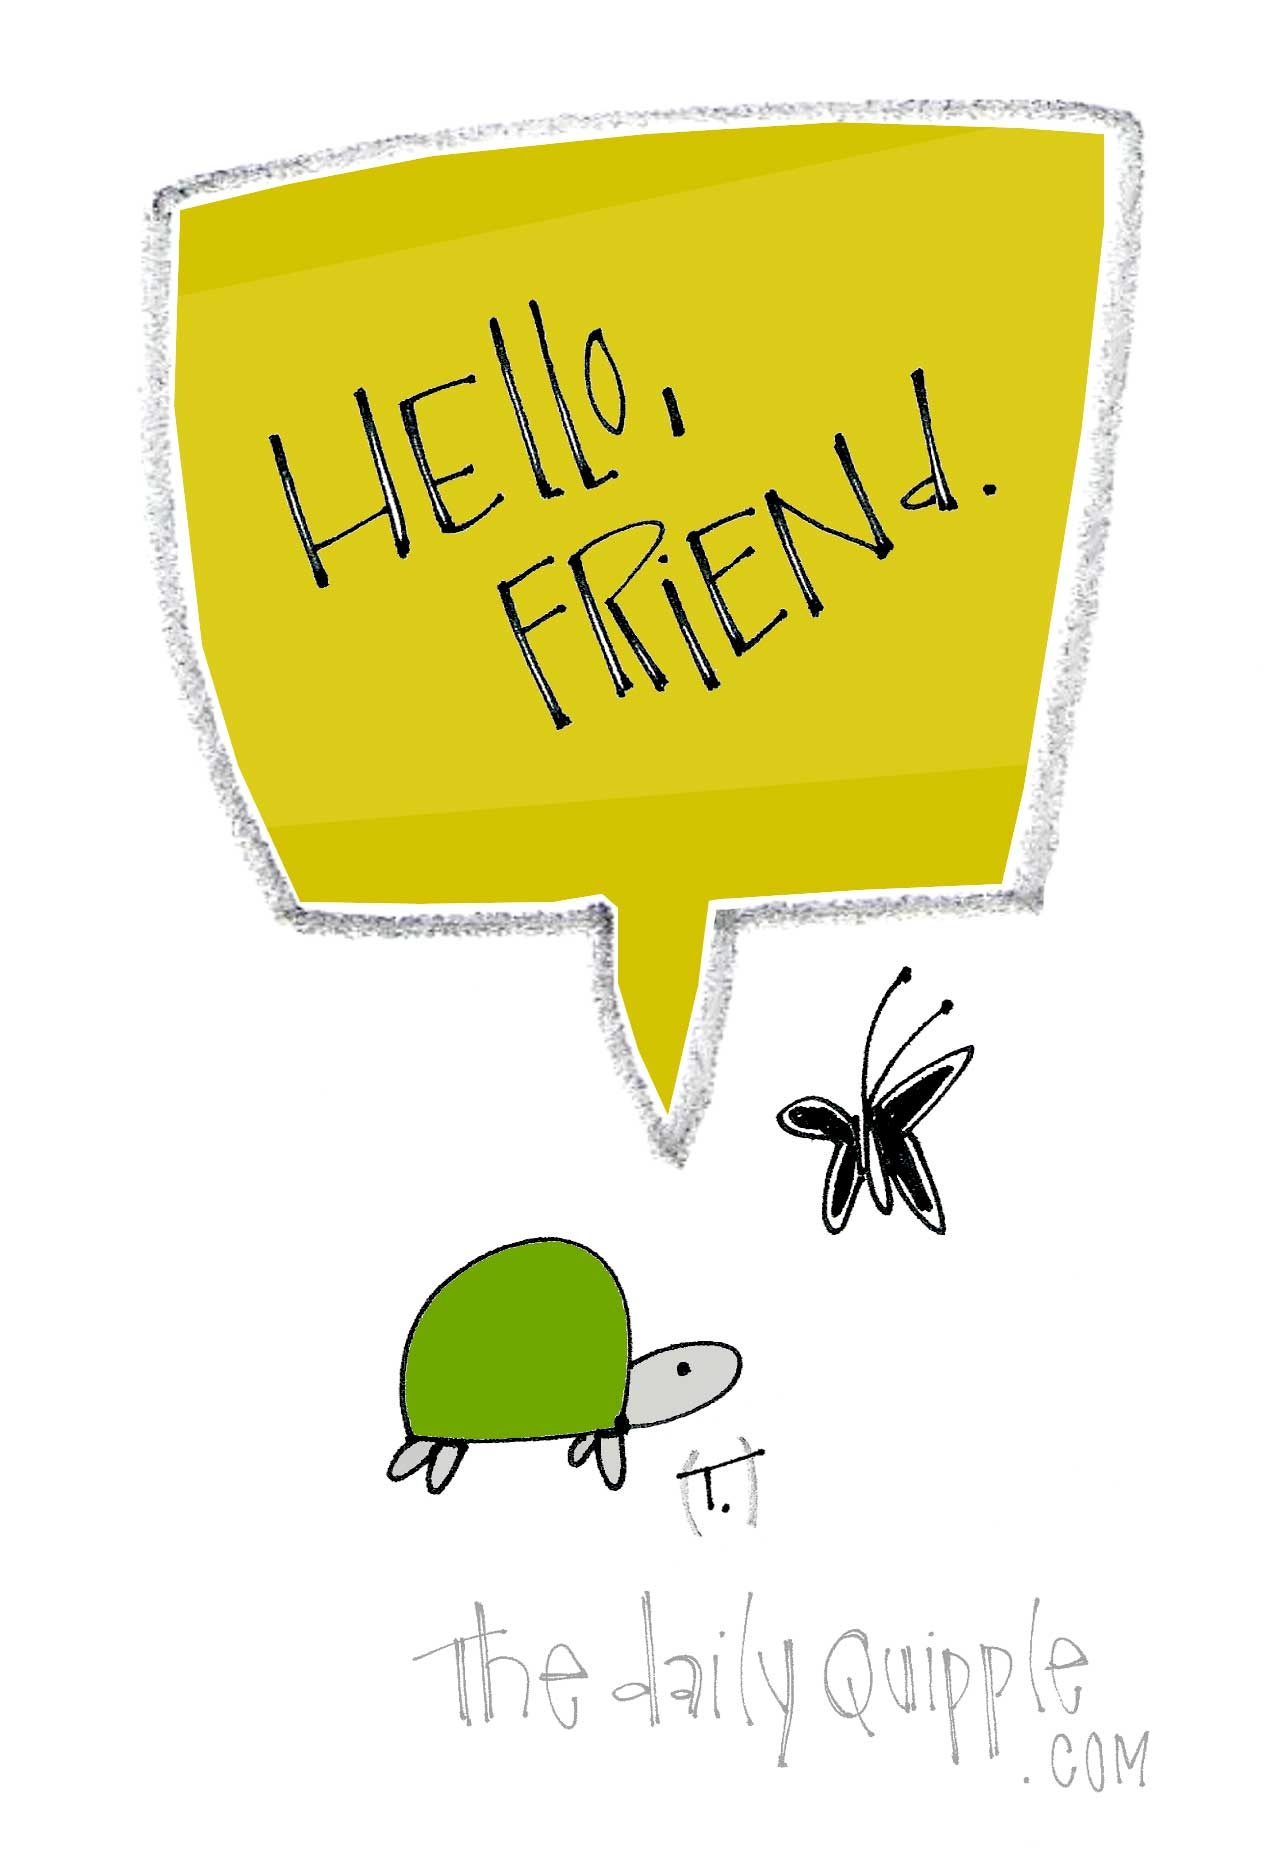 Friend Quotes Hello Friend Quote  The Daily Quipple